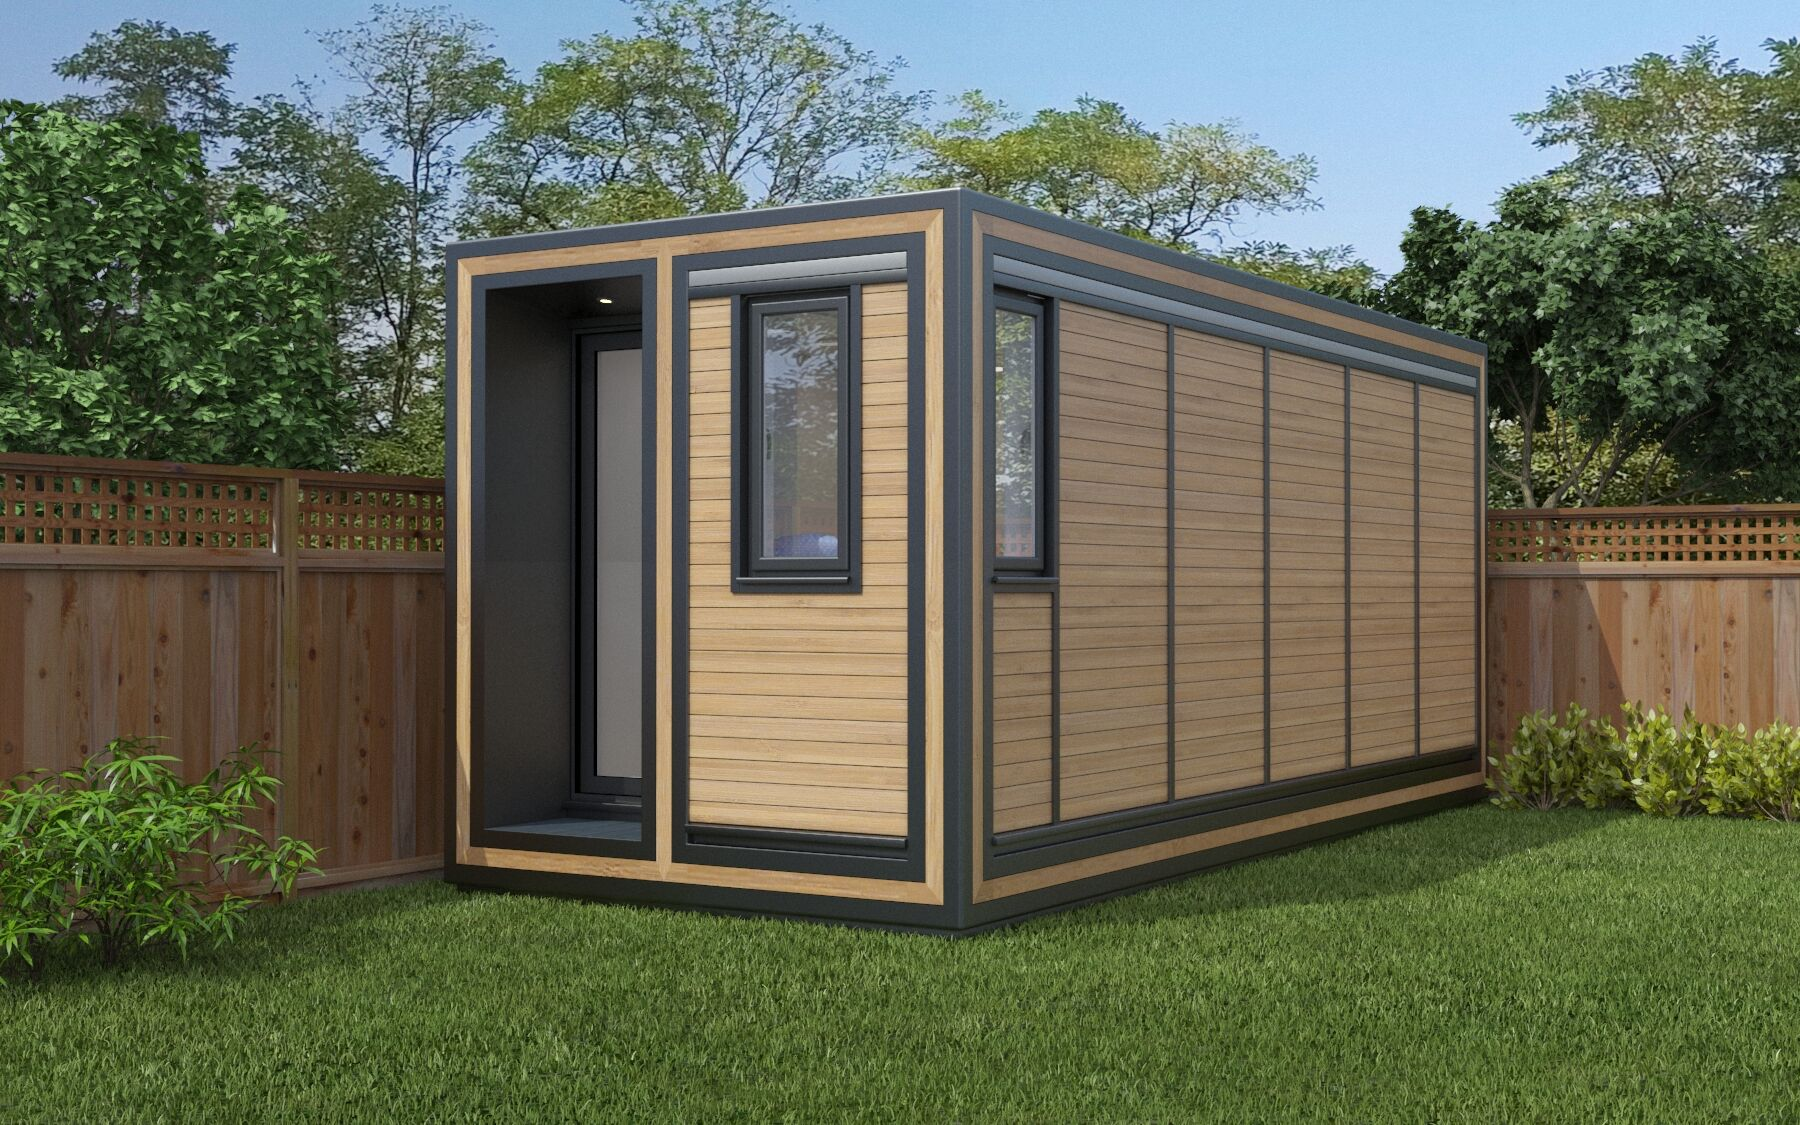 ZEDBOX 255  (2 x 5.5)  Internal Size: 2117x 5888  External Size: 2587 x 6358  Bed Options: Single or Double  Kitchen Options: Micro Kitchen  Wet Room Options: Yes  Portico: Yes  Price:  £26,000    Optional Extras    Request Zedbox Catalogue